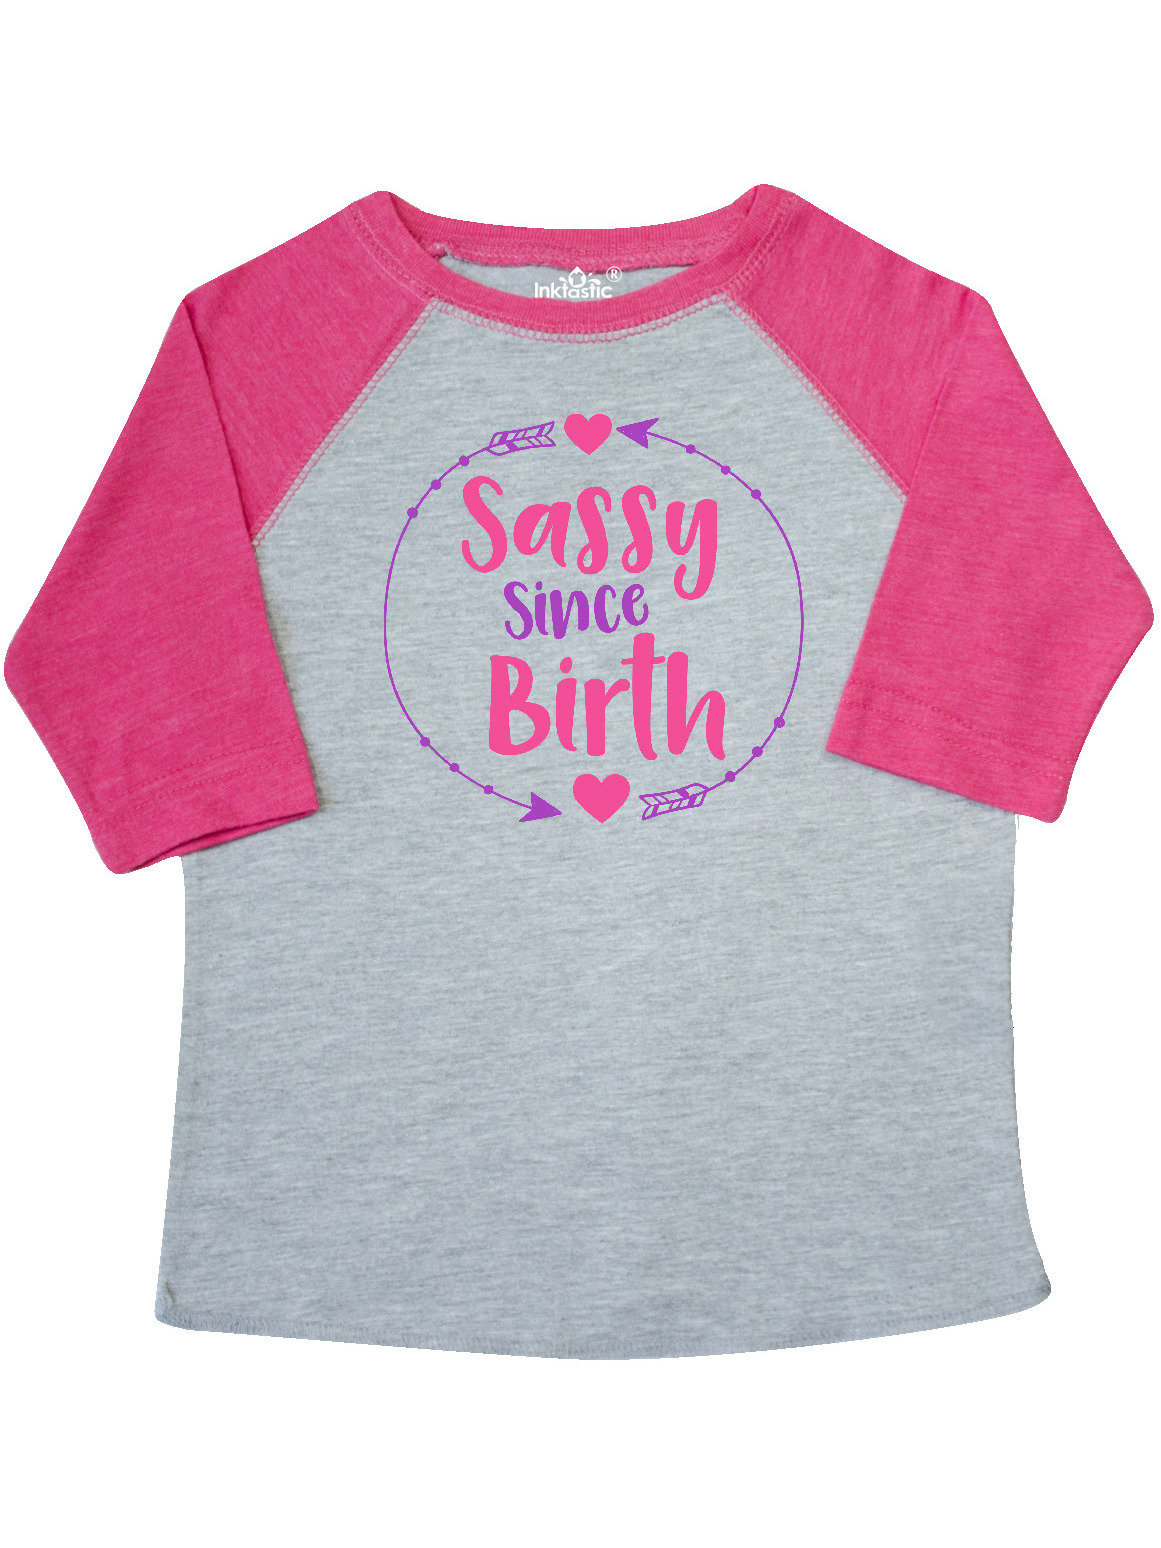 Pink Toddler Long Sleeve T-Shirt inktastic Sassy Since Birth Arrows Hearts